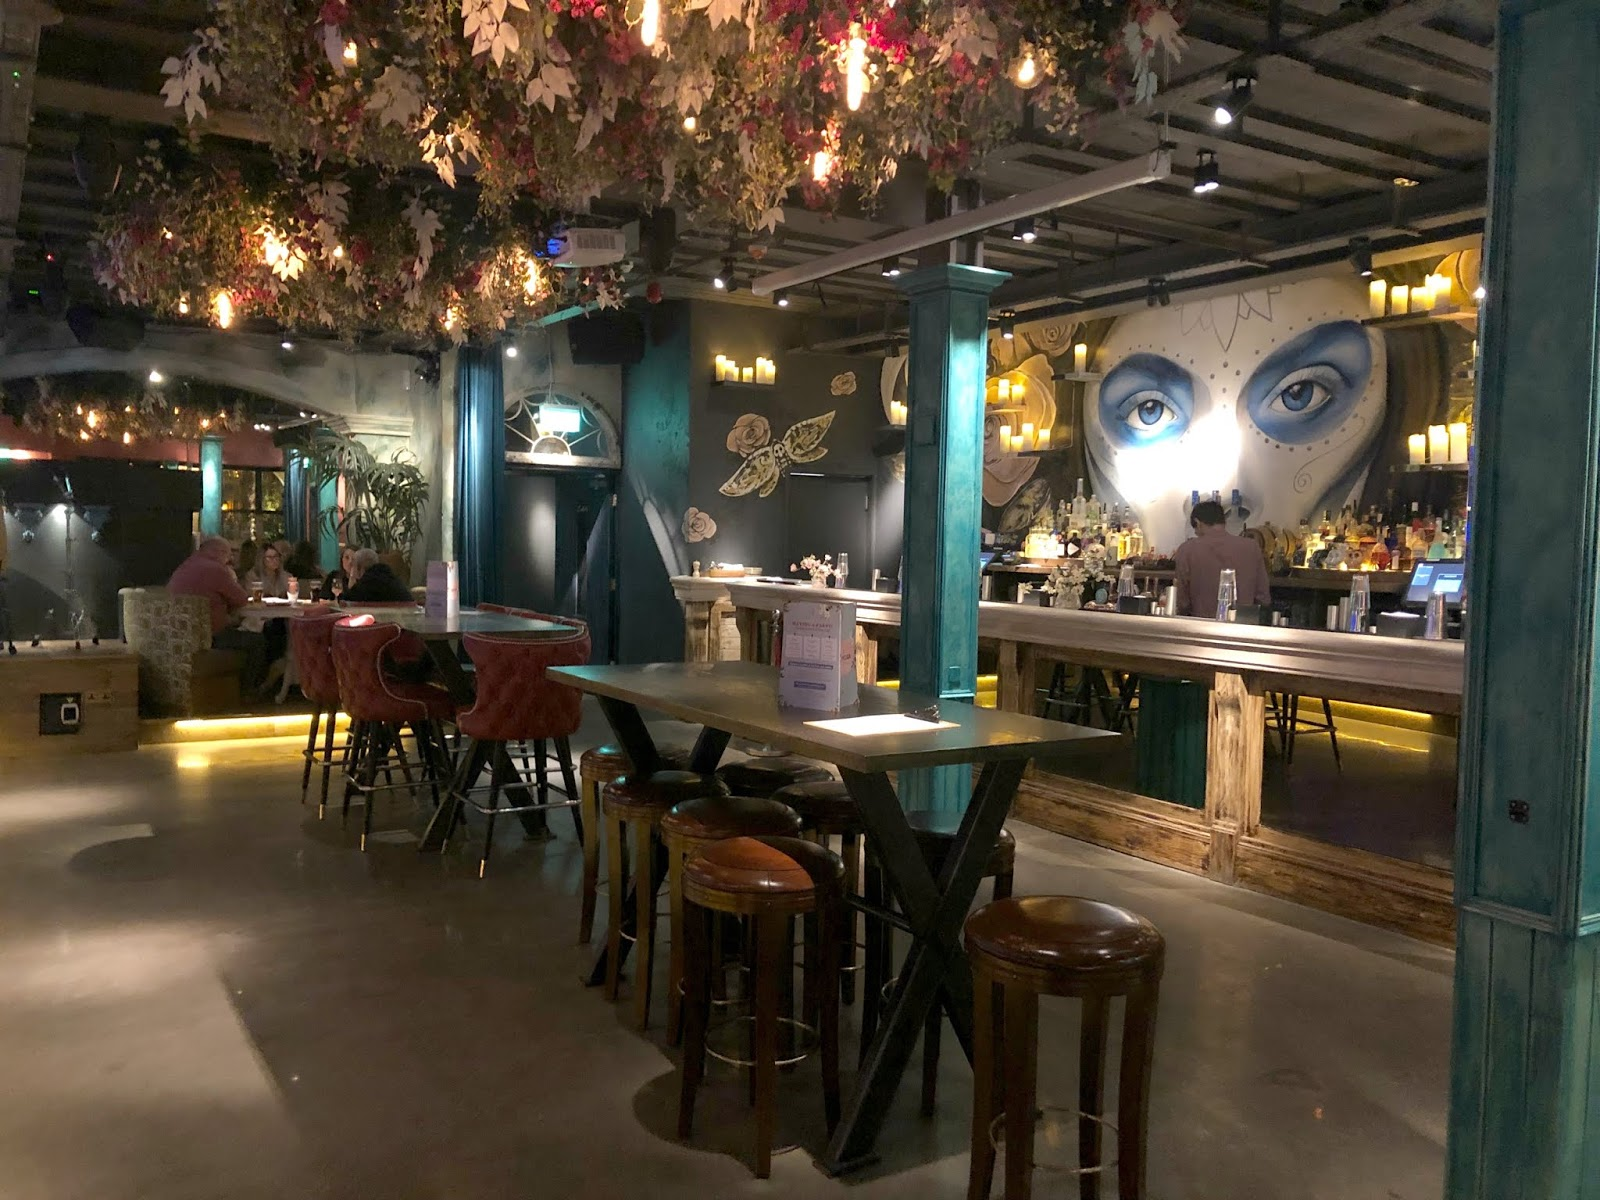 Discover The Palm - Sunderland's Brand New Multi Venue Restaurant and Bar